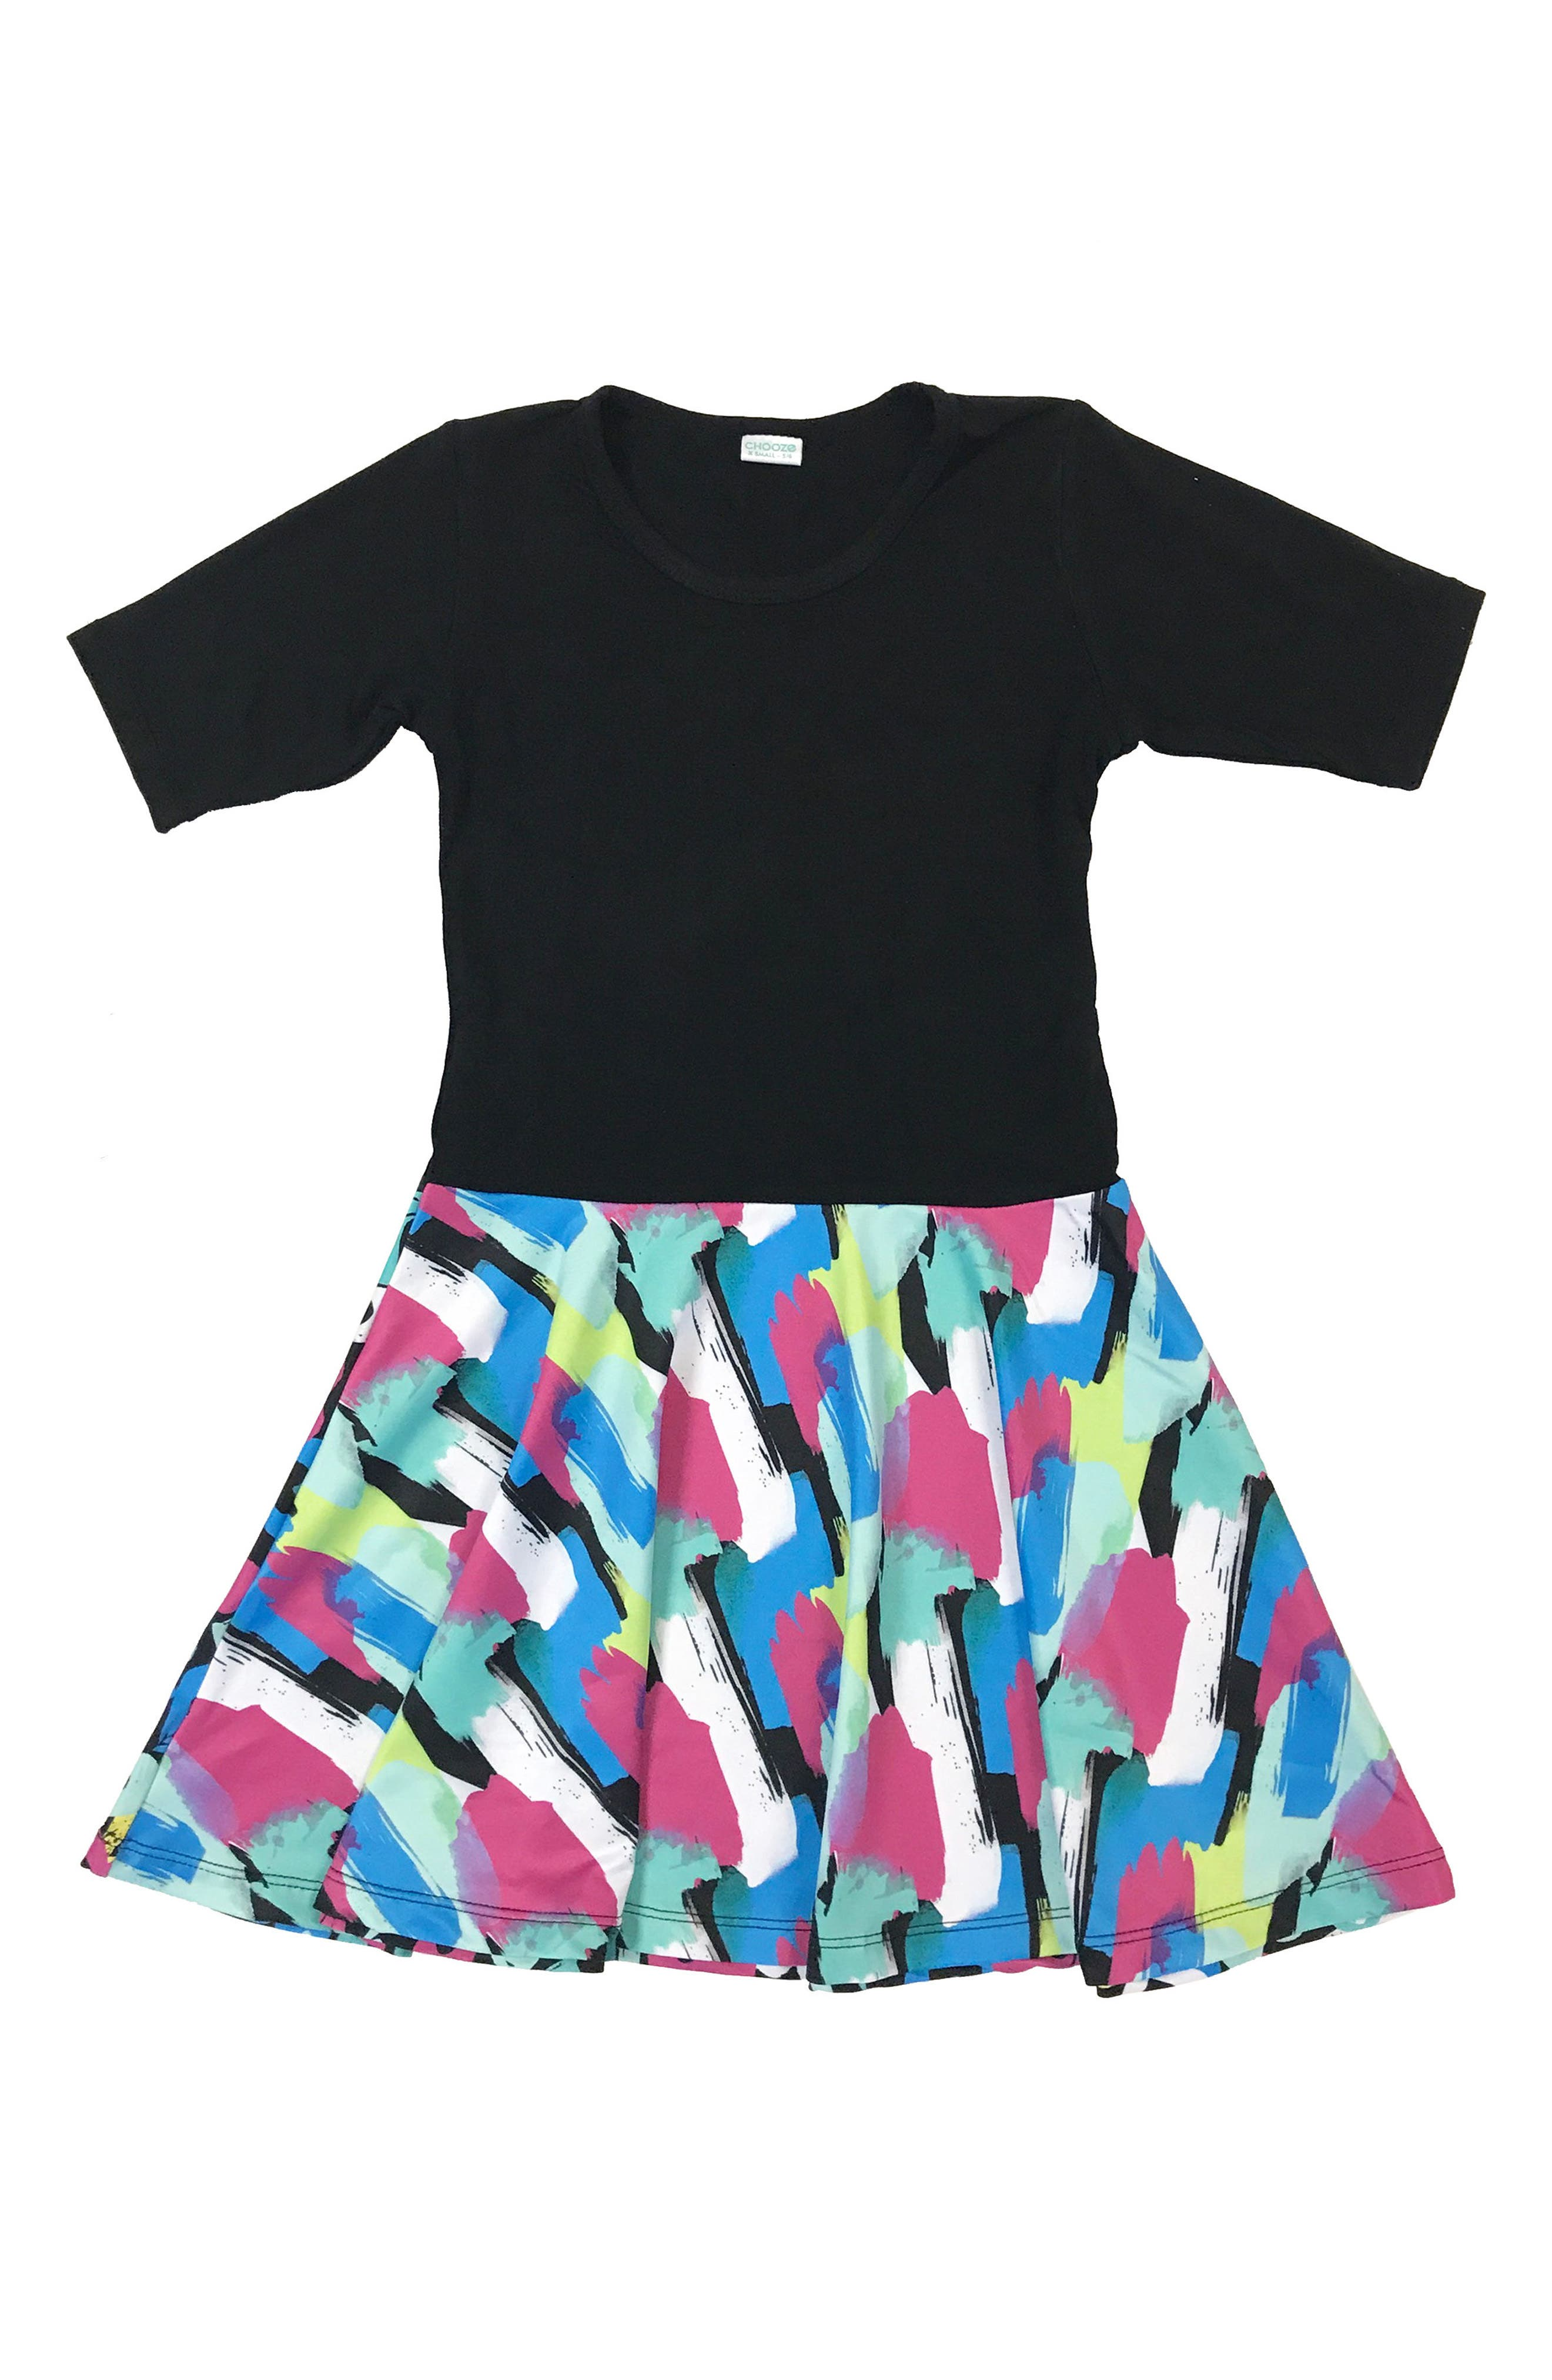 Alternate Image 1 Selected - CHOOZE Spree Mixed Print Dress (Little Girls & Big Girls)